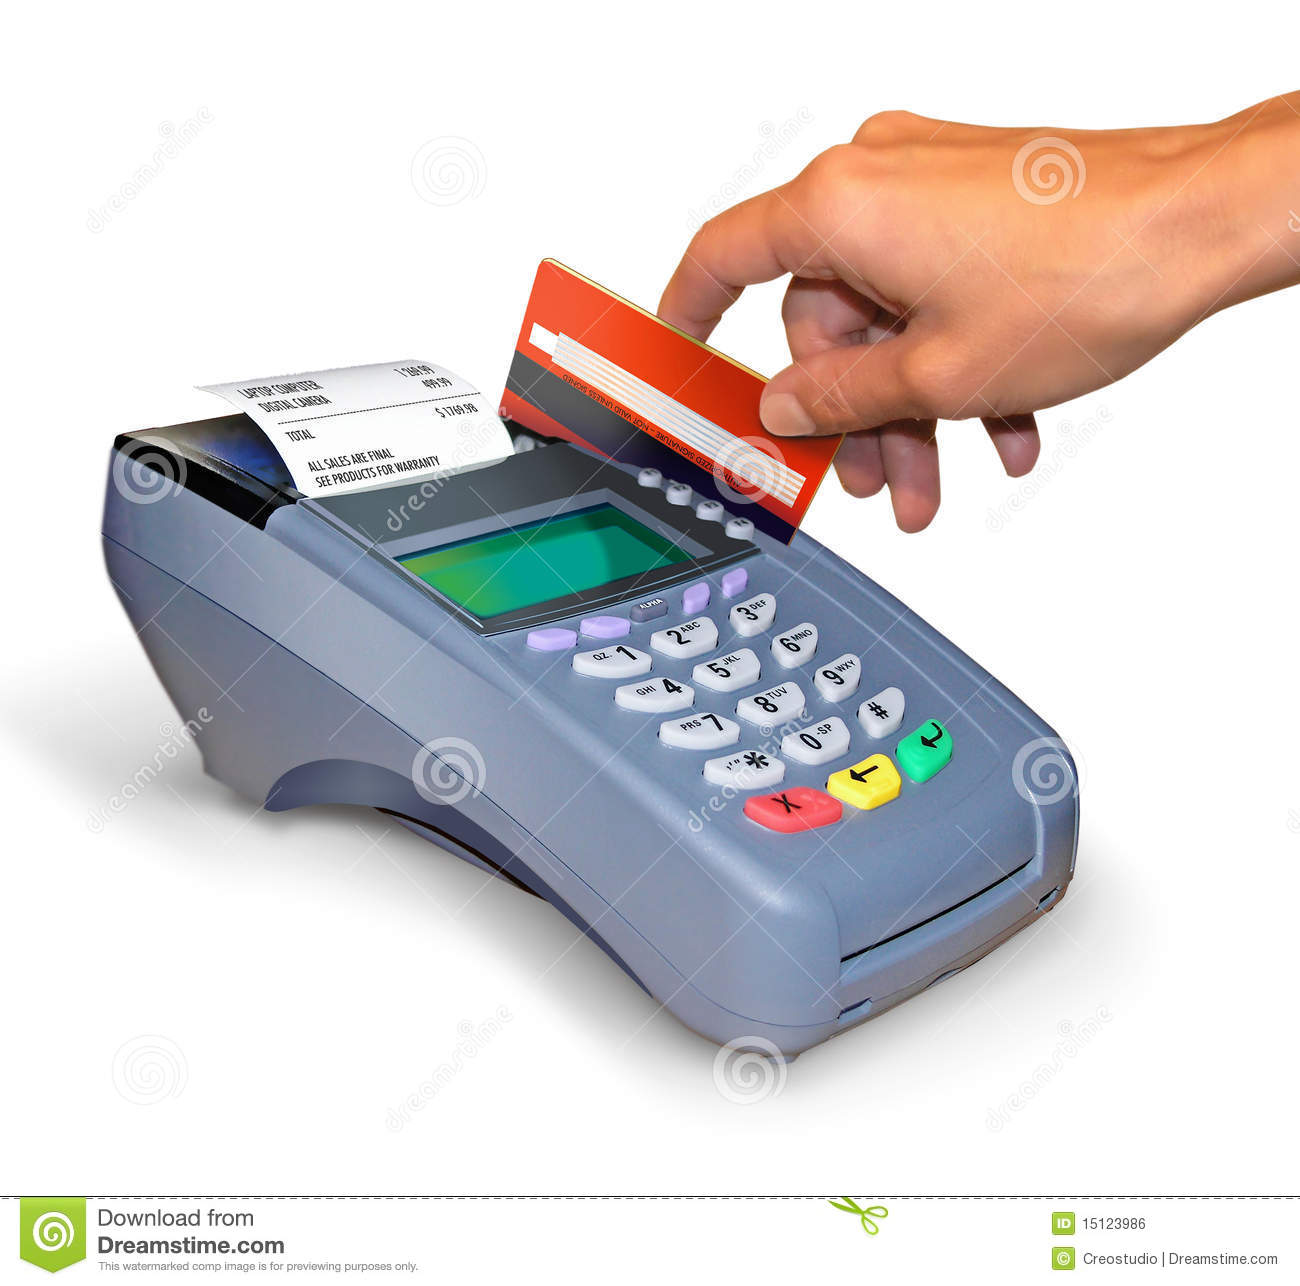 Best credit card reader for small business image collections free credit card reader best credit card rewards for small business free credit card reader magicingreecefo magicingreecefo Gallery